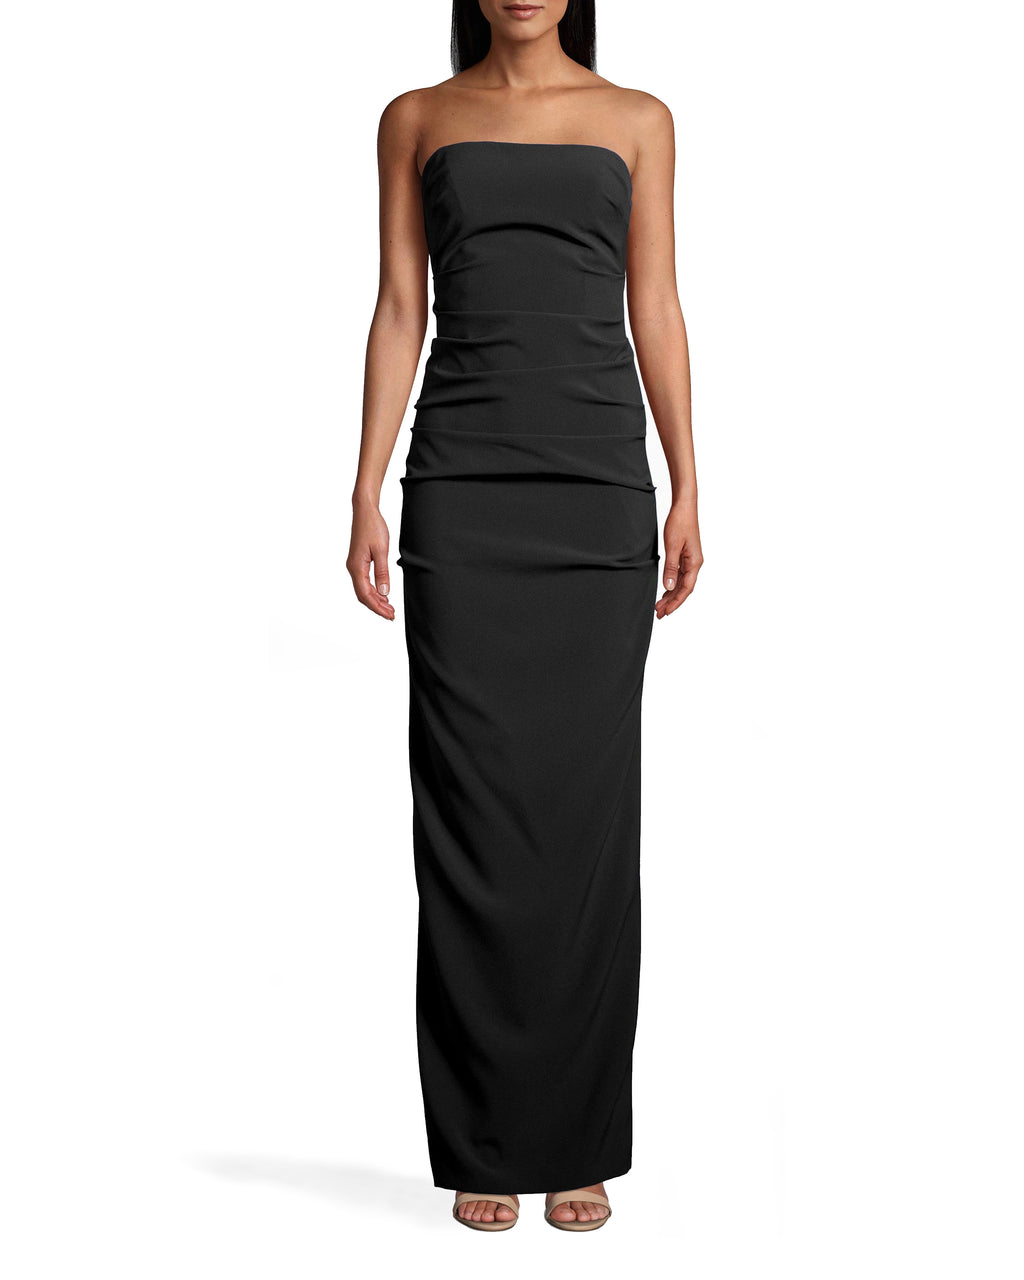 BP10277 - NEW STRETCH CREPE TUCK STRAPLESS GOWN - dresses - long - THIS CHIC STRAPLESS GOWN HAS FLATTERING RUCHING THROUGHOUT THE BODY AND HITS JUST BELOW THE ANKLE. THIS TIMELESS PIECE IS DESIGNED IN TWO VIBRANT COLORS AND CLASSIC BLACK. Add 1 line break STYLIST TIP: PAIR WITH STANDOUT ACCESSORIES LIKE STATEMENT EARRINGS OR A SPARKLY CLUTCH.